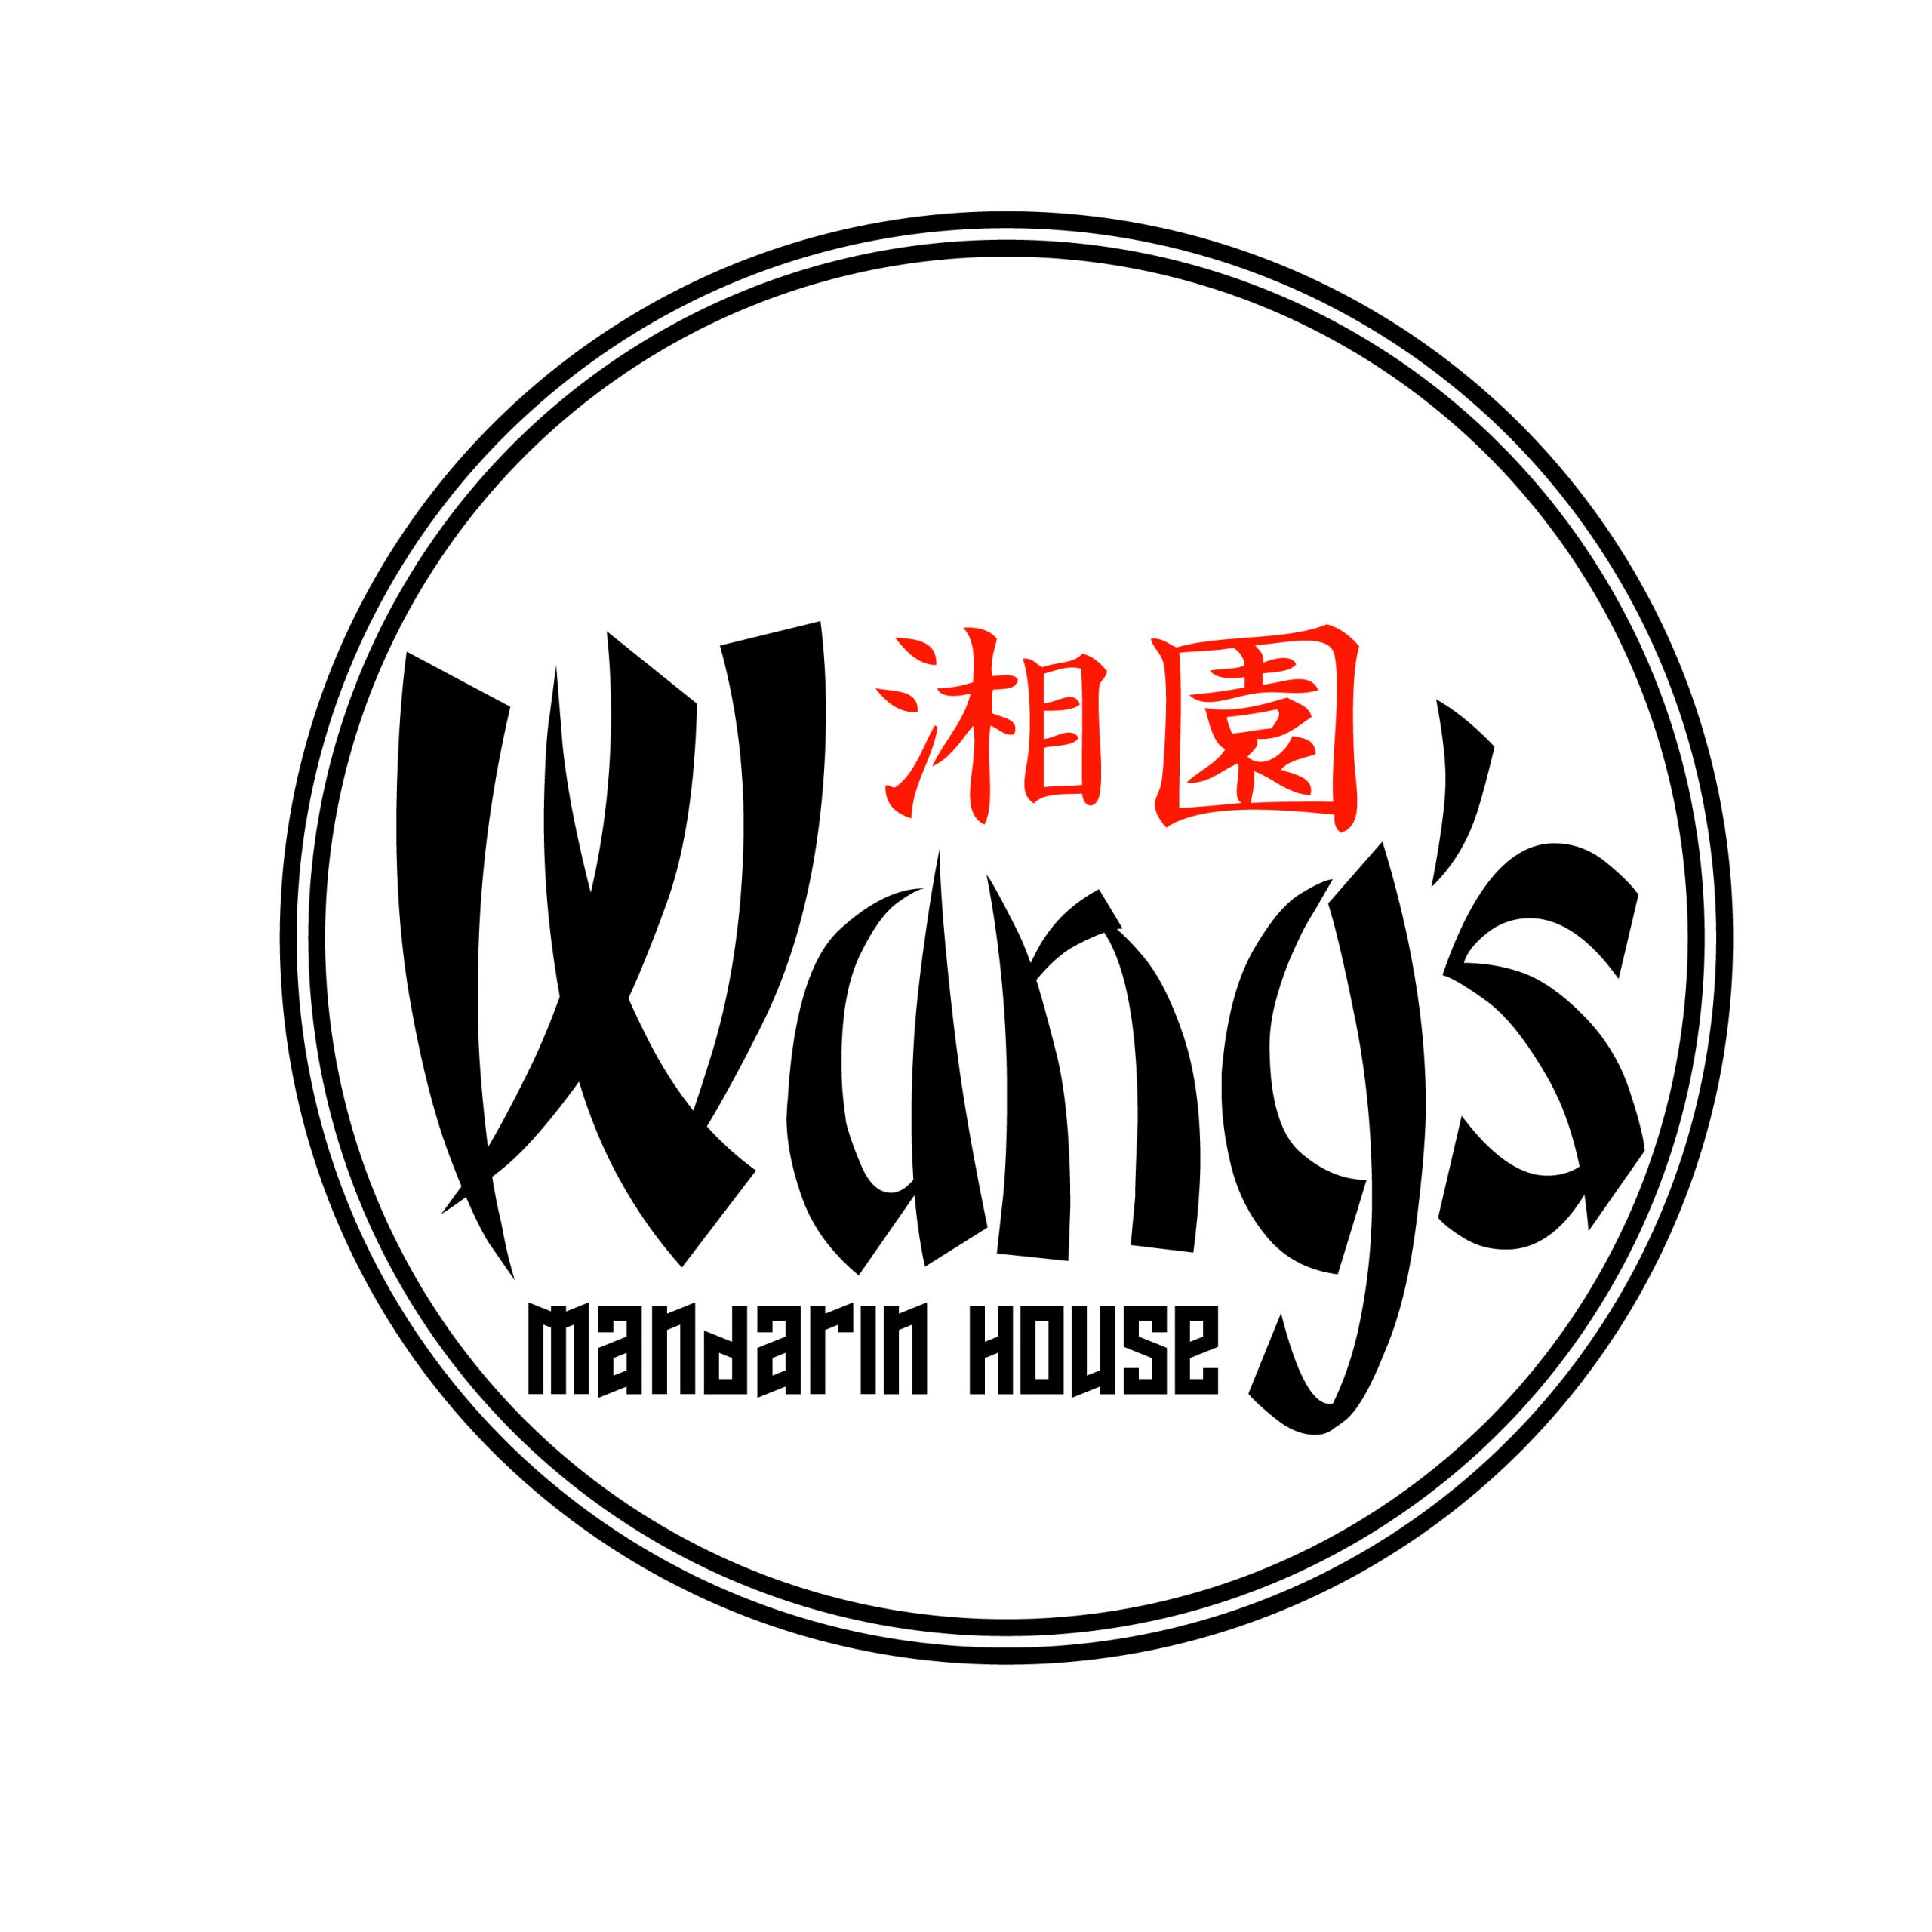 Authentic & Contemporary Chinese Food